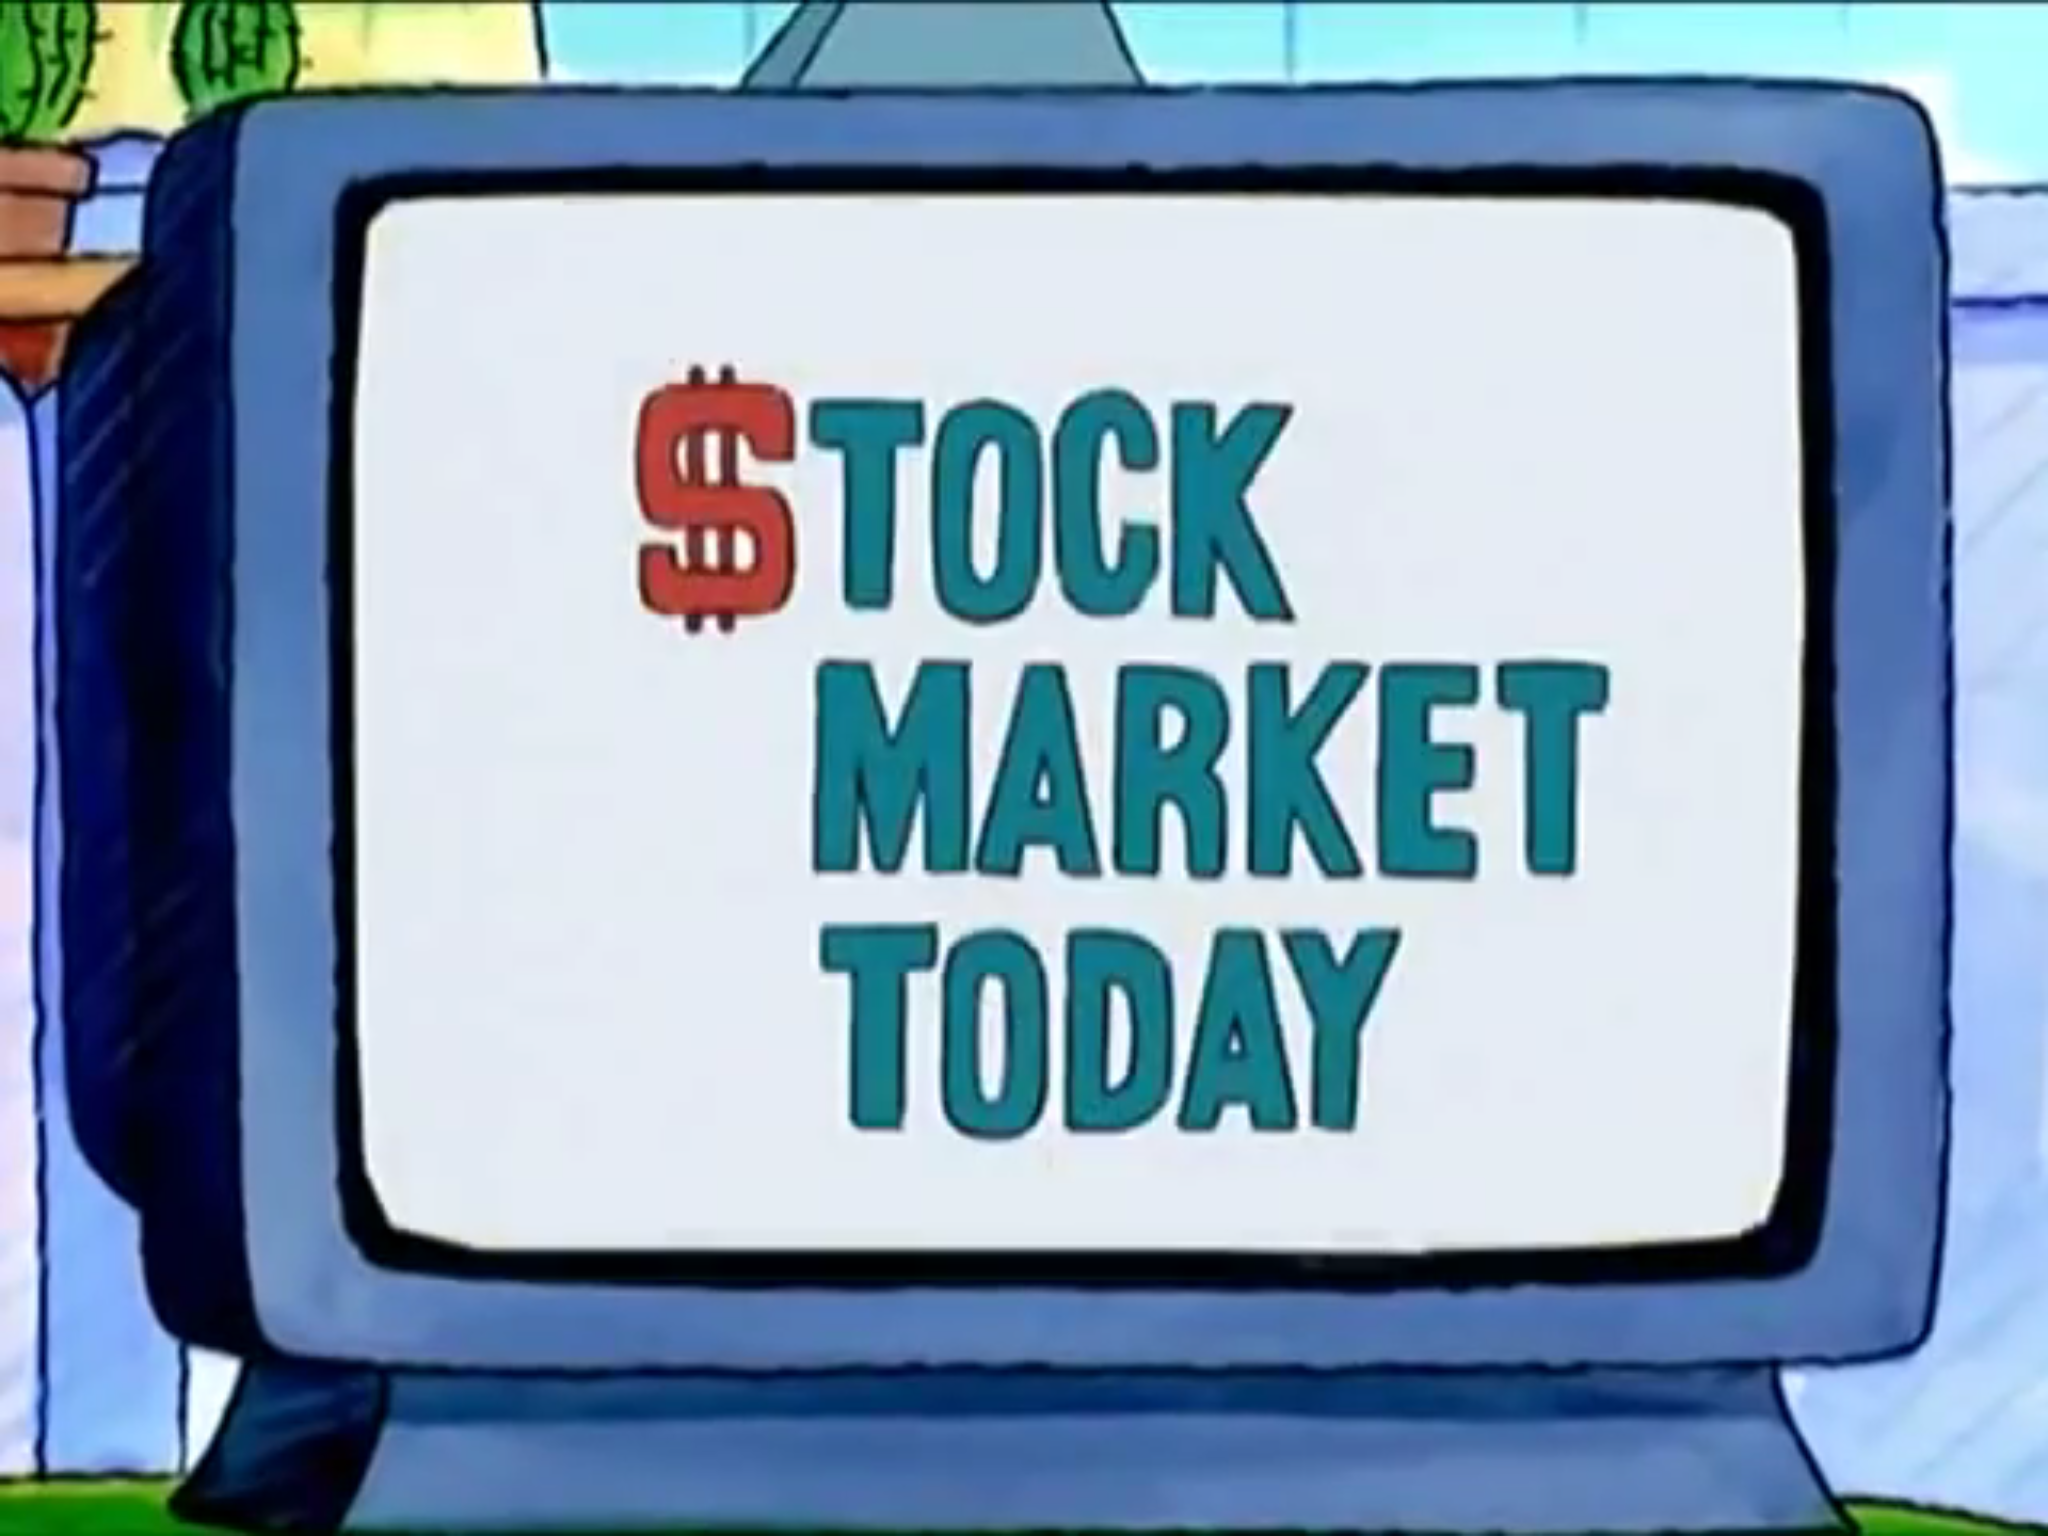 $tock Market Today